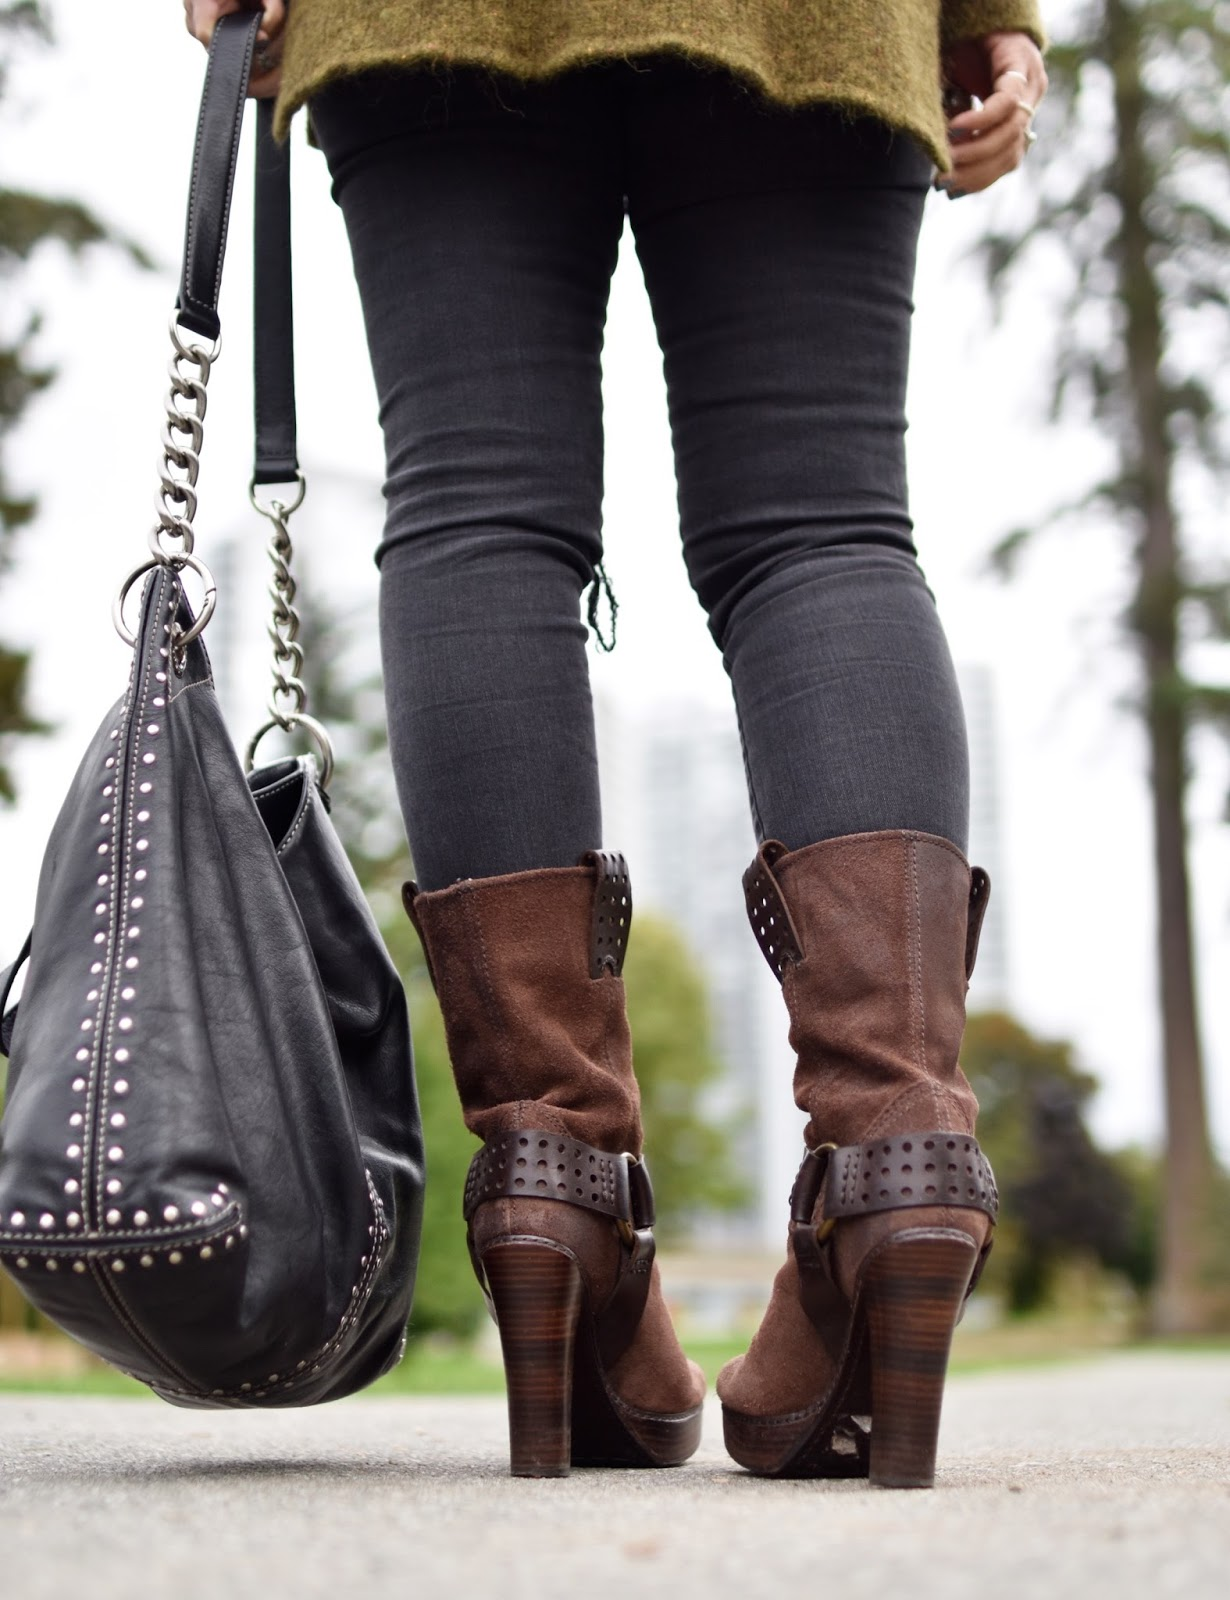 Monika Faulkner outfit inspiration - distressed skinny jeans, Frye platform harness boots